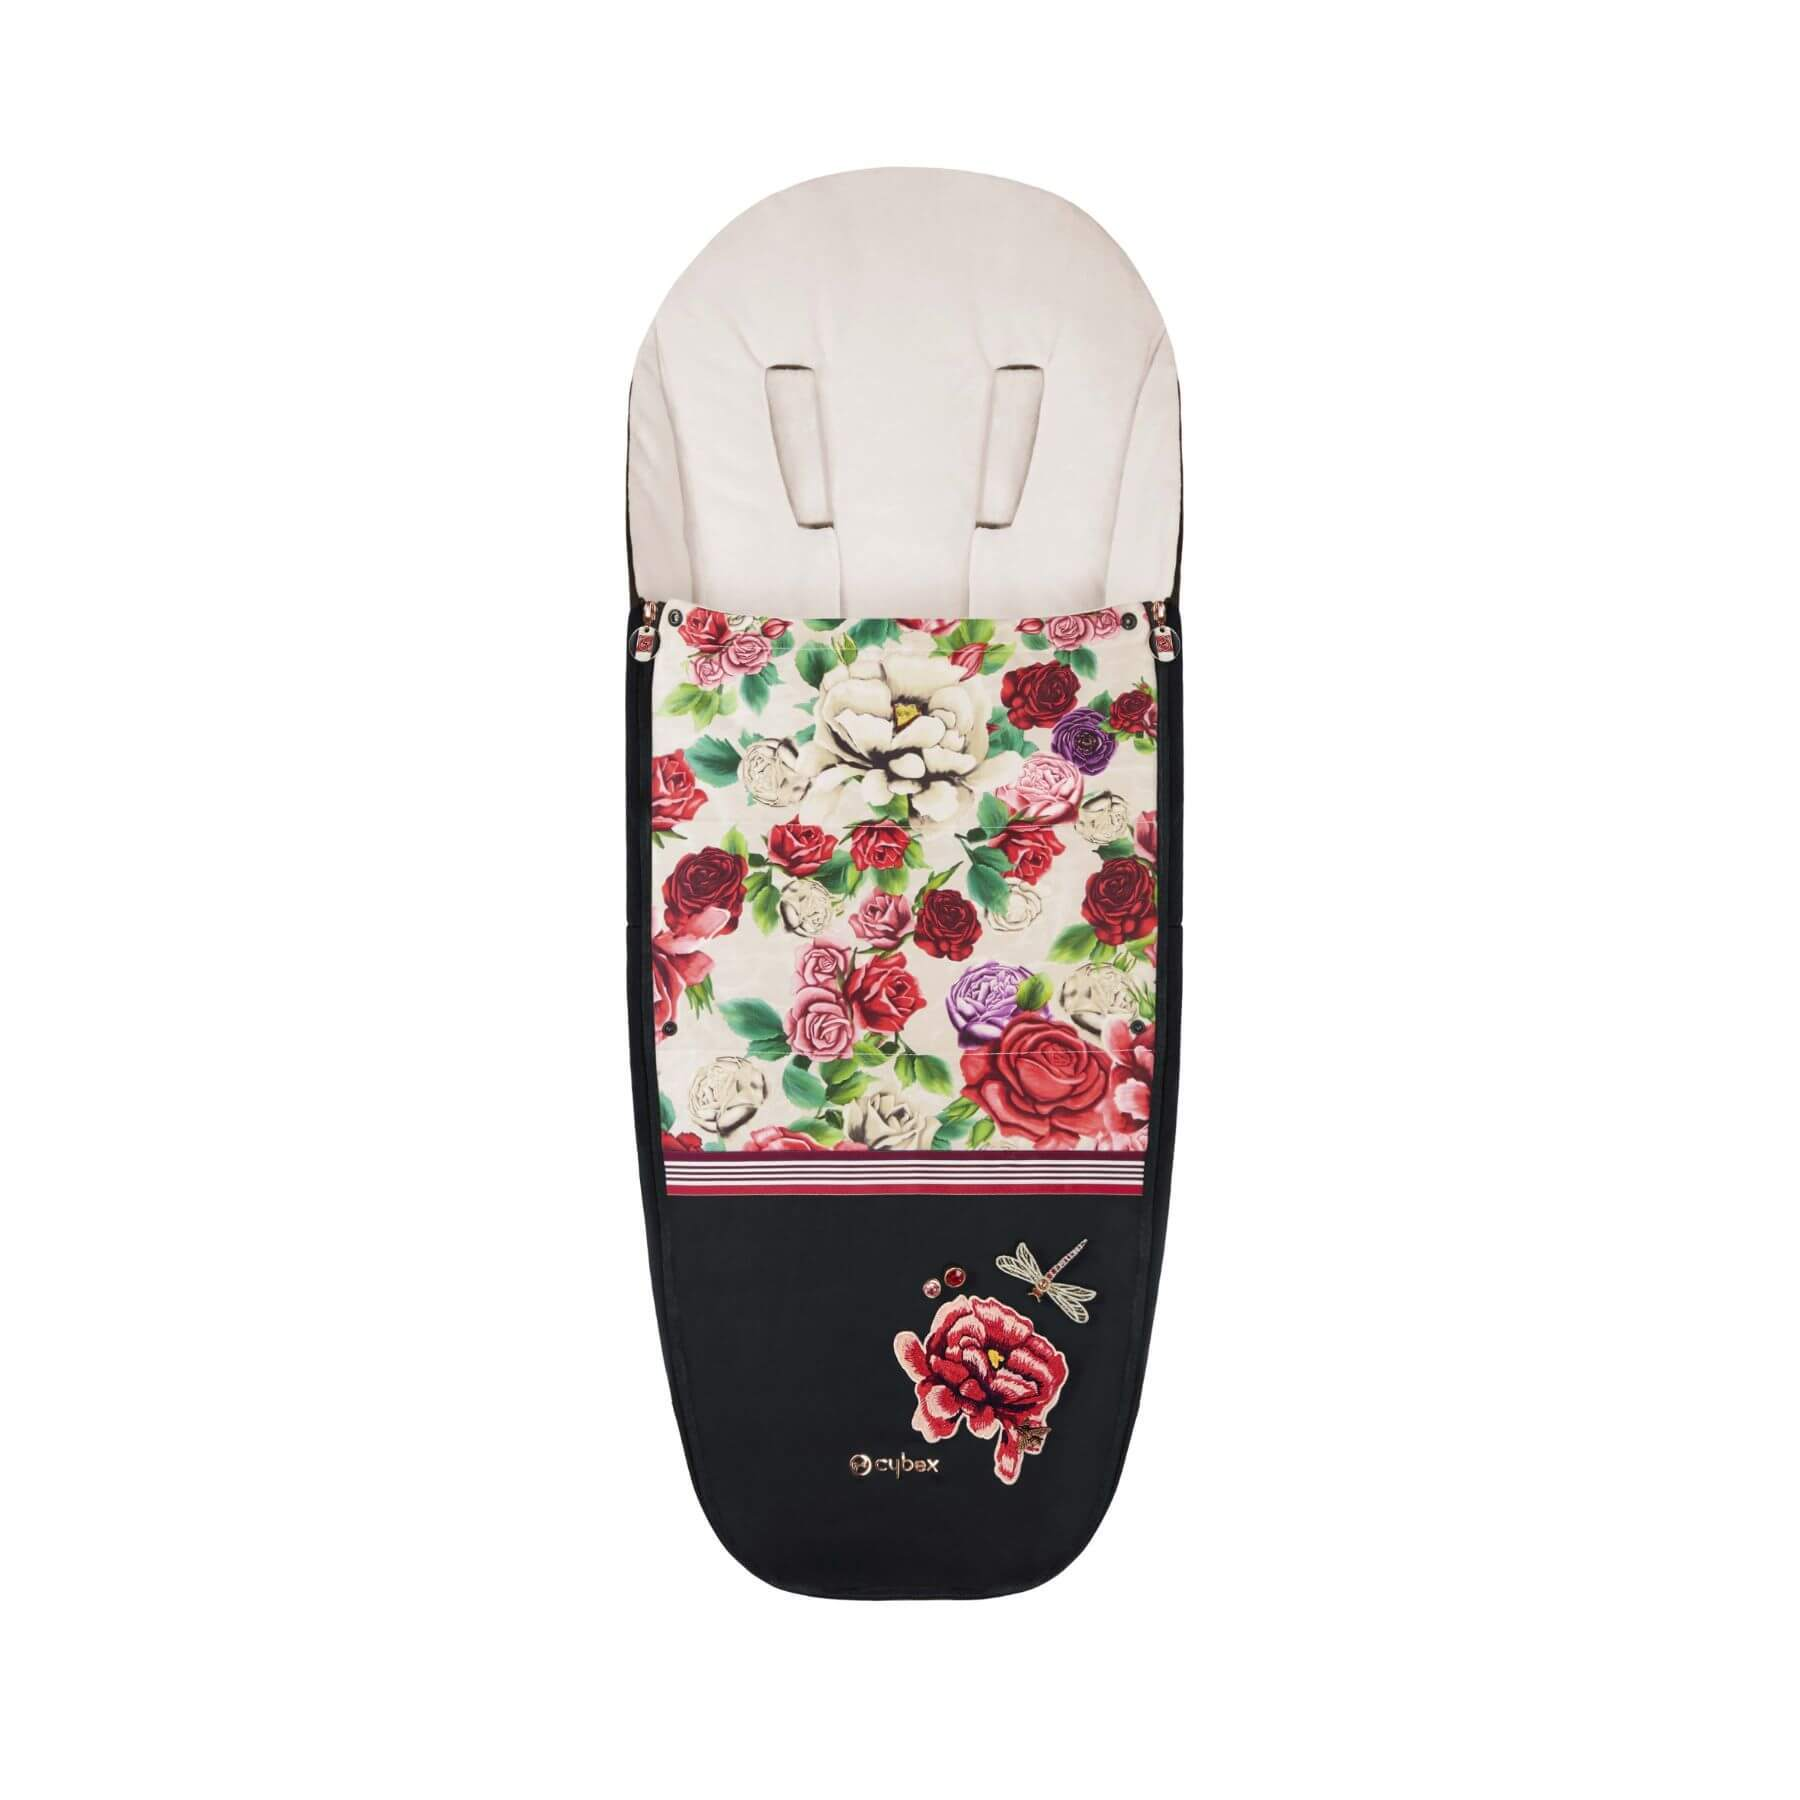 Cybex Platinum Footmuff - Spring Blossom Light